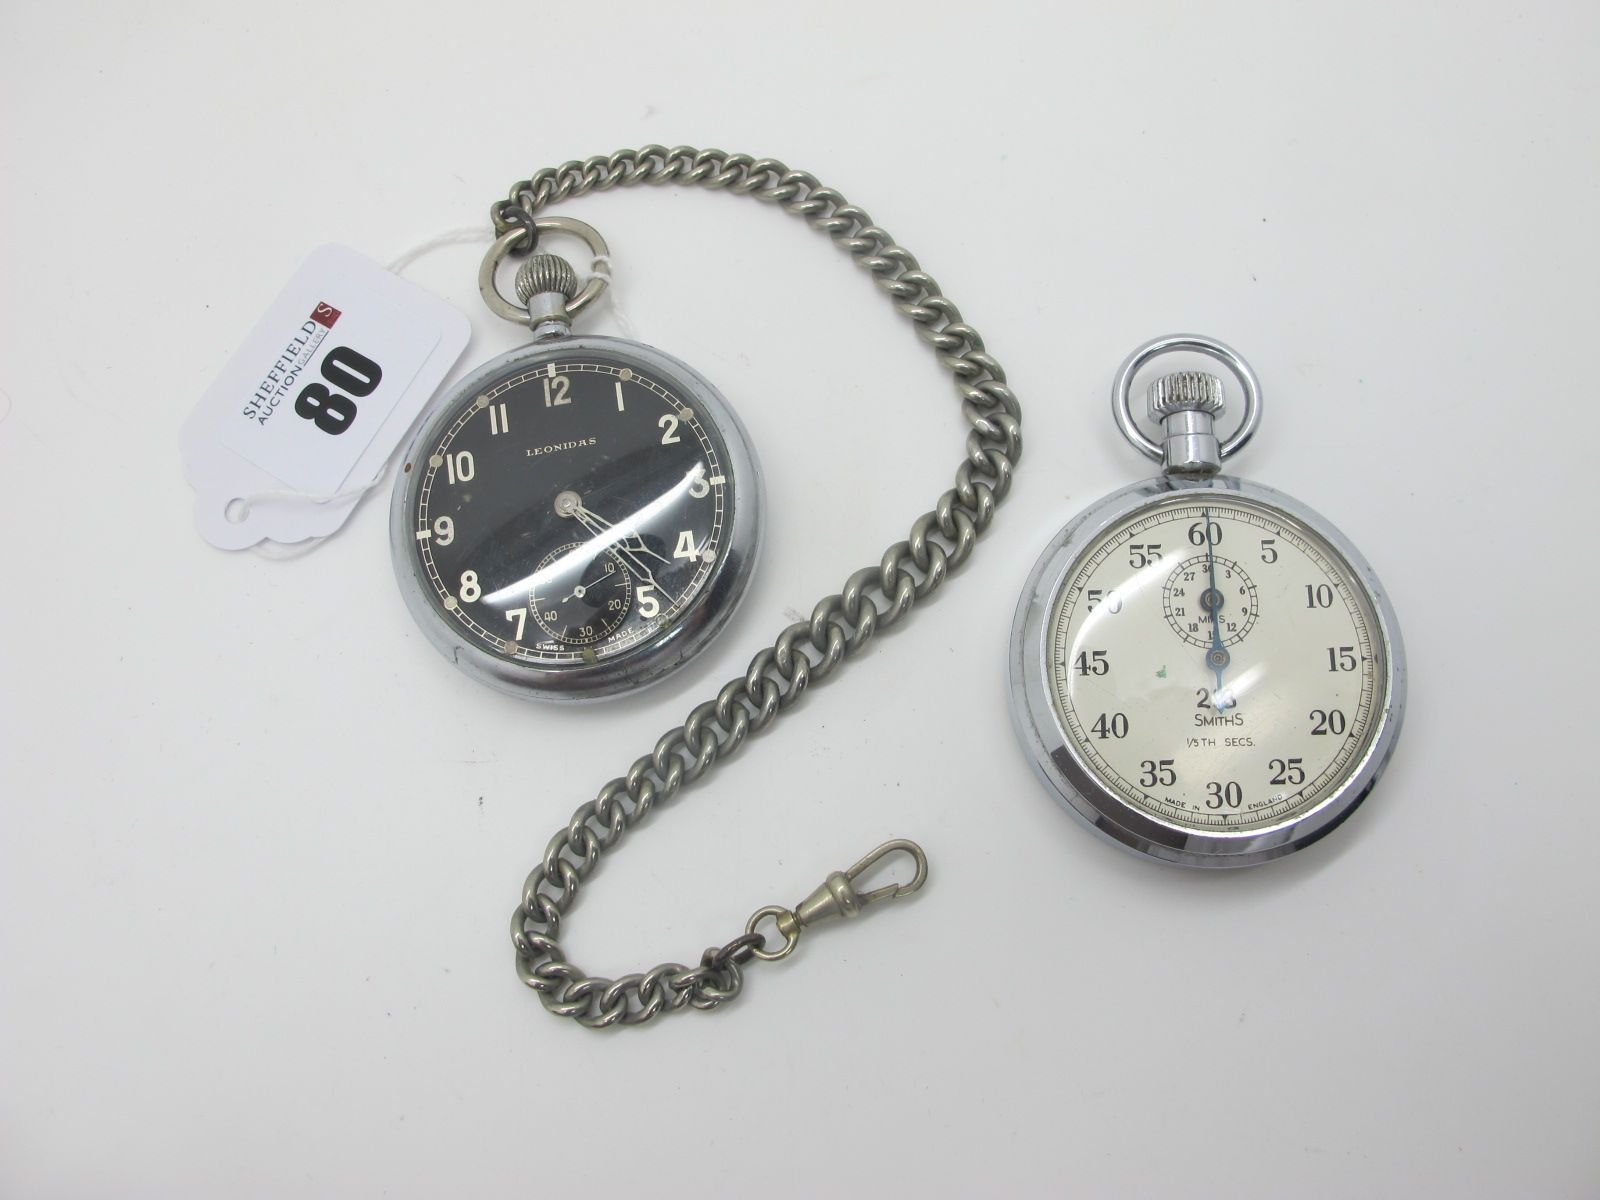 Leonidas; A Military Openface Pocketwatch, the signed black dial with Arabic numerals and seconds